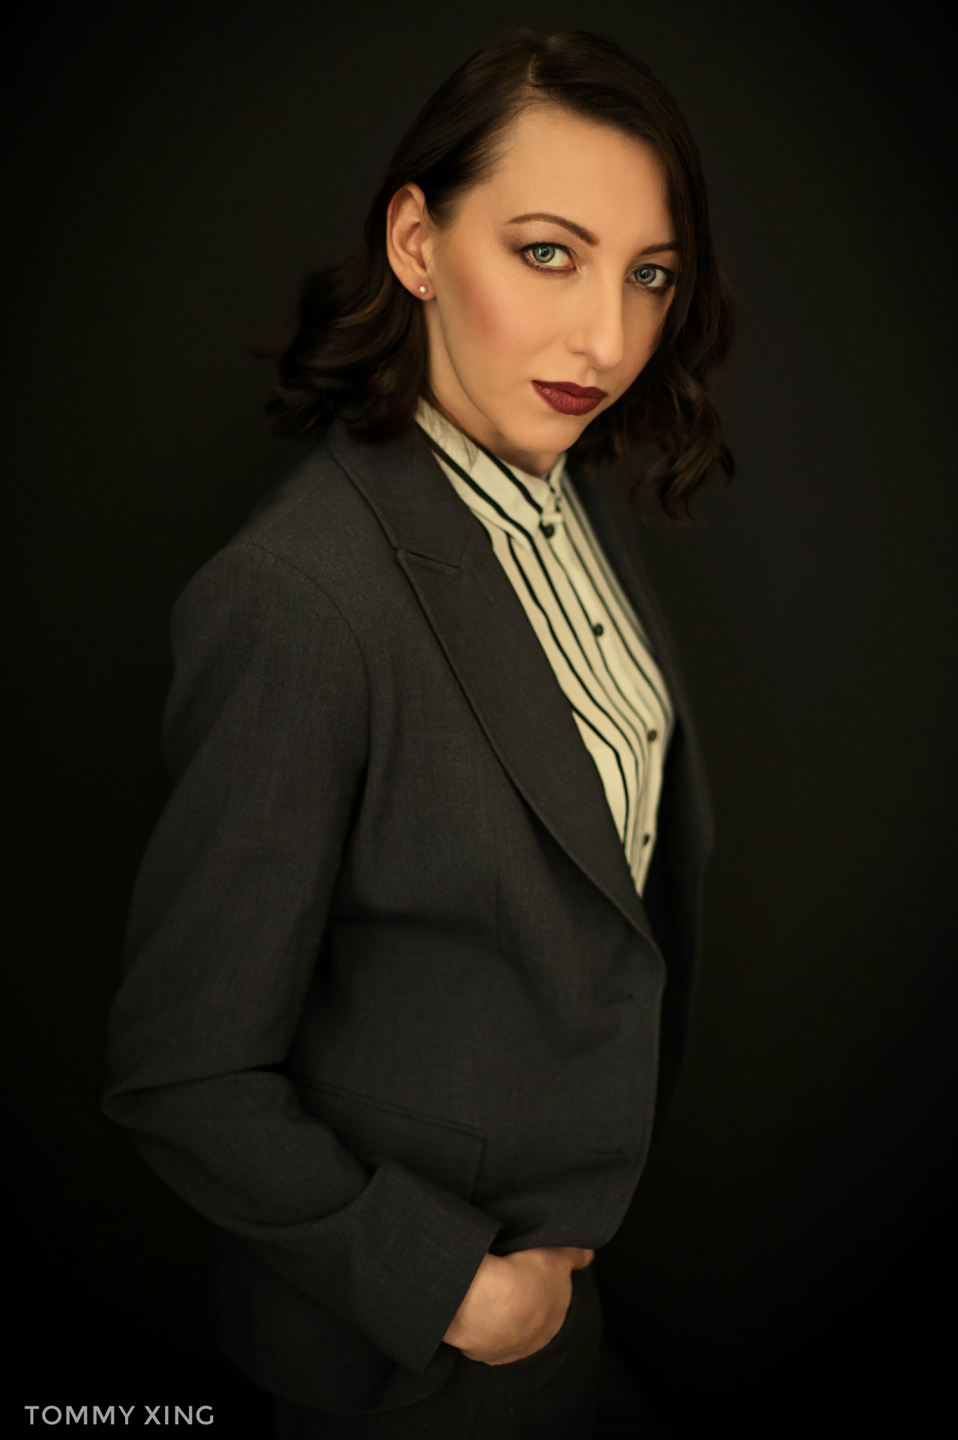 Romika Annabell Osorio - Los Angeles Portrait and headshot photographer - Tommy Xing Photography 05.jpg